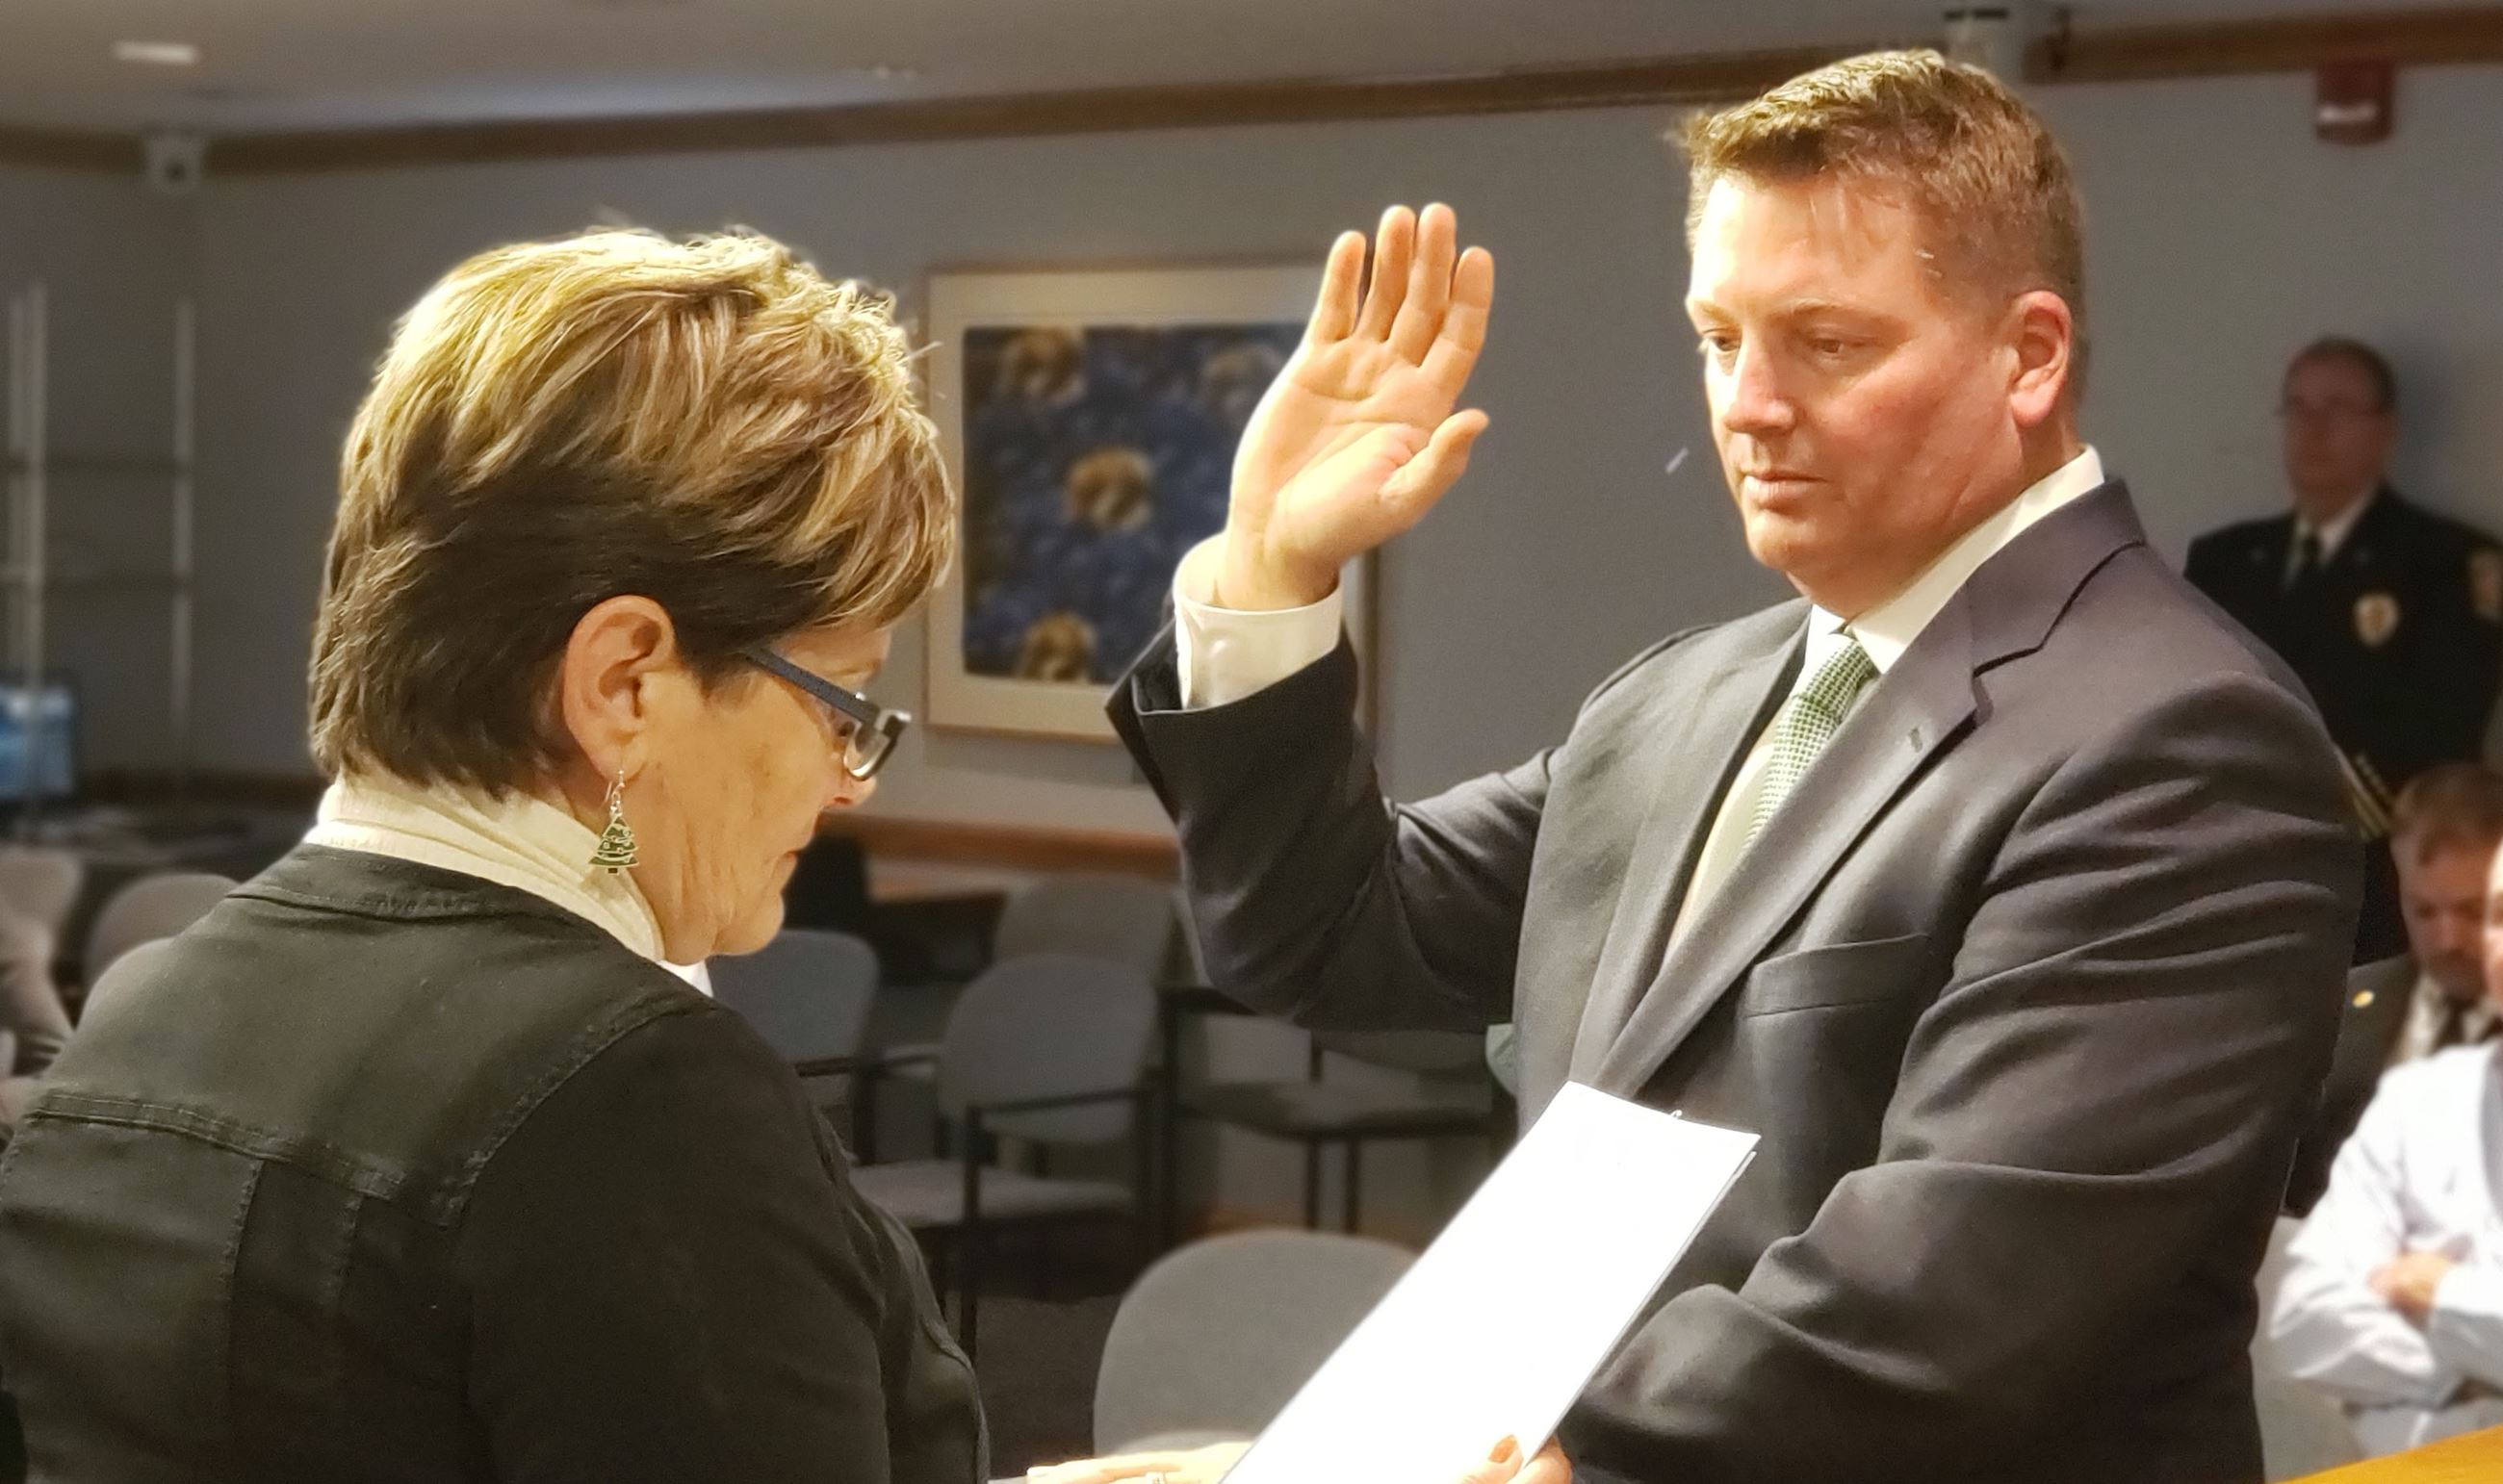 Mike Siers Swearing In Dec 4 2019